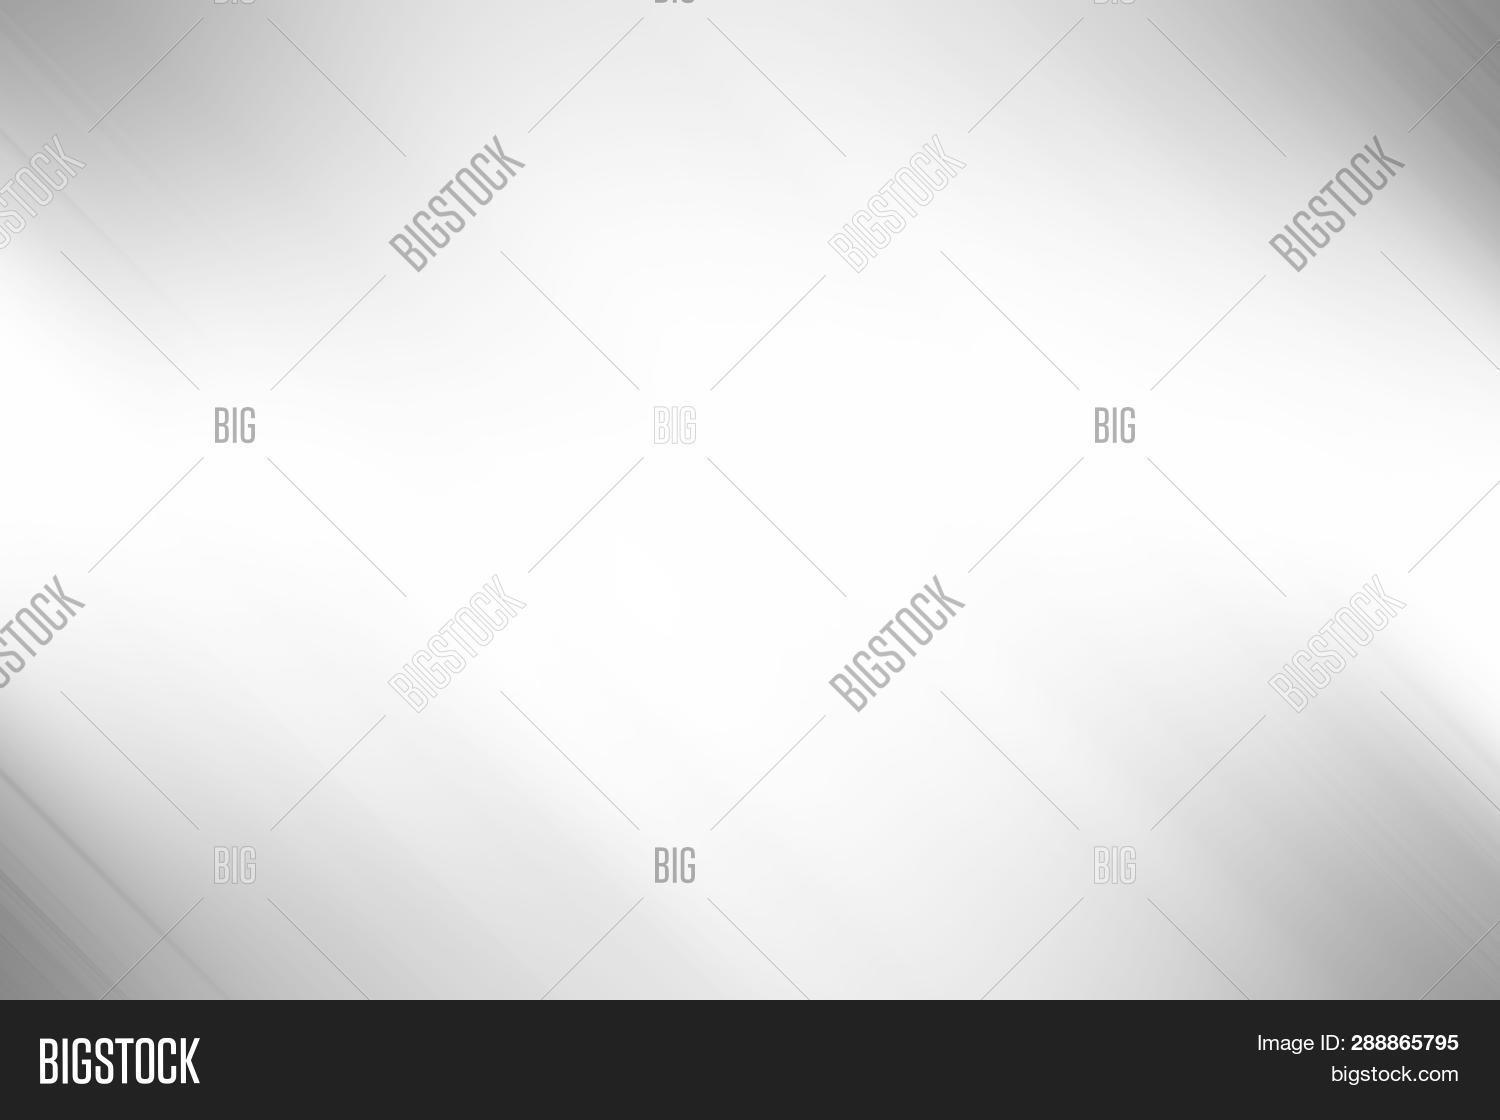 abstract,backdrop,background,beautiful,black,blueberry,blur,blurred,brochure,burst,card,color,colour,computer,concept,dark,decoration,decorative,diagonal,effect,element,futuristic,gold,gradient,graphic,gray,grey,high,idea,illustration,isolated,light,line,material,media,metal,pale,pastel,shiny,silver,sleek,smooth,smoothy,soft,tech,technology,texture,textured,white